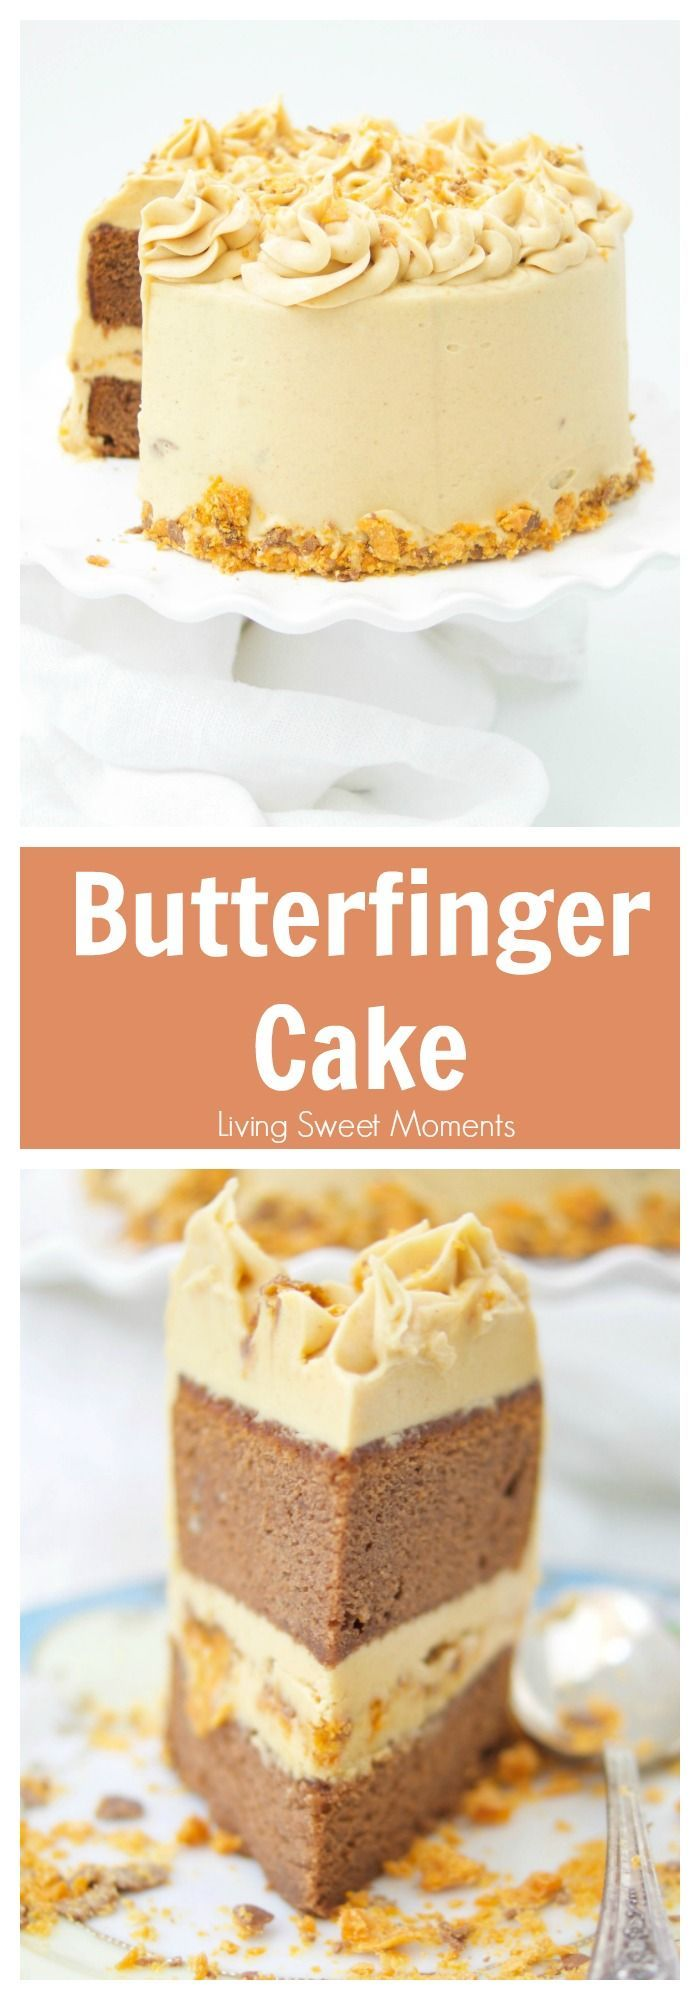 This delicious Butterfinger Cake Recipe dessert is made from scratch and features a moist chocolate cake with peanut butter frosting and butterfingers. More cake recipes on livingsweetmoments.com